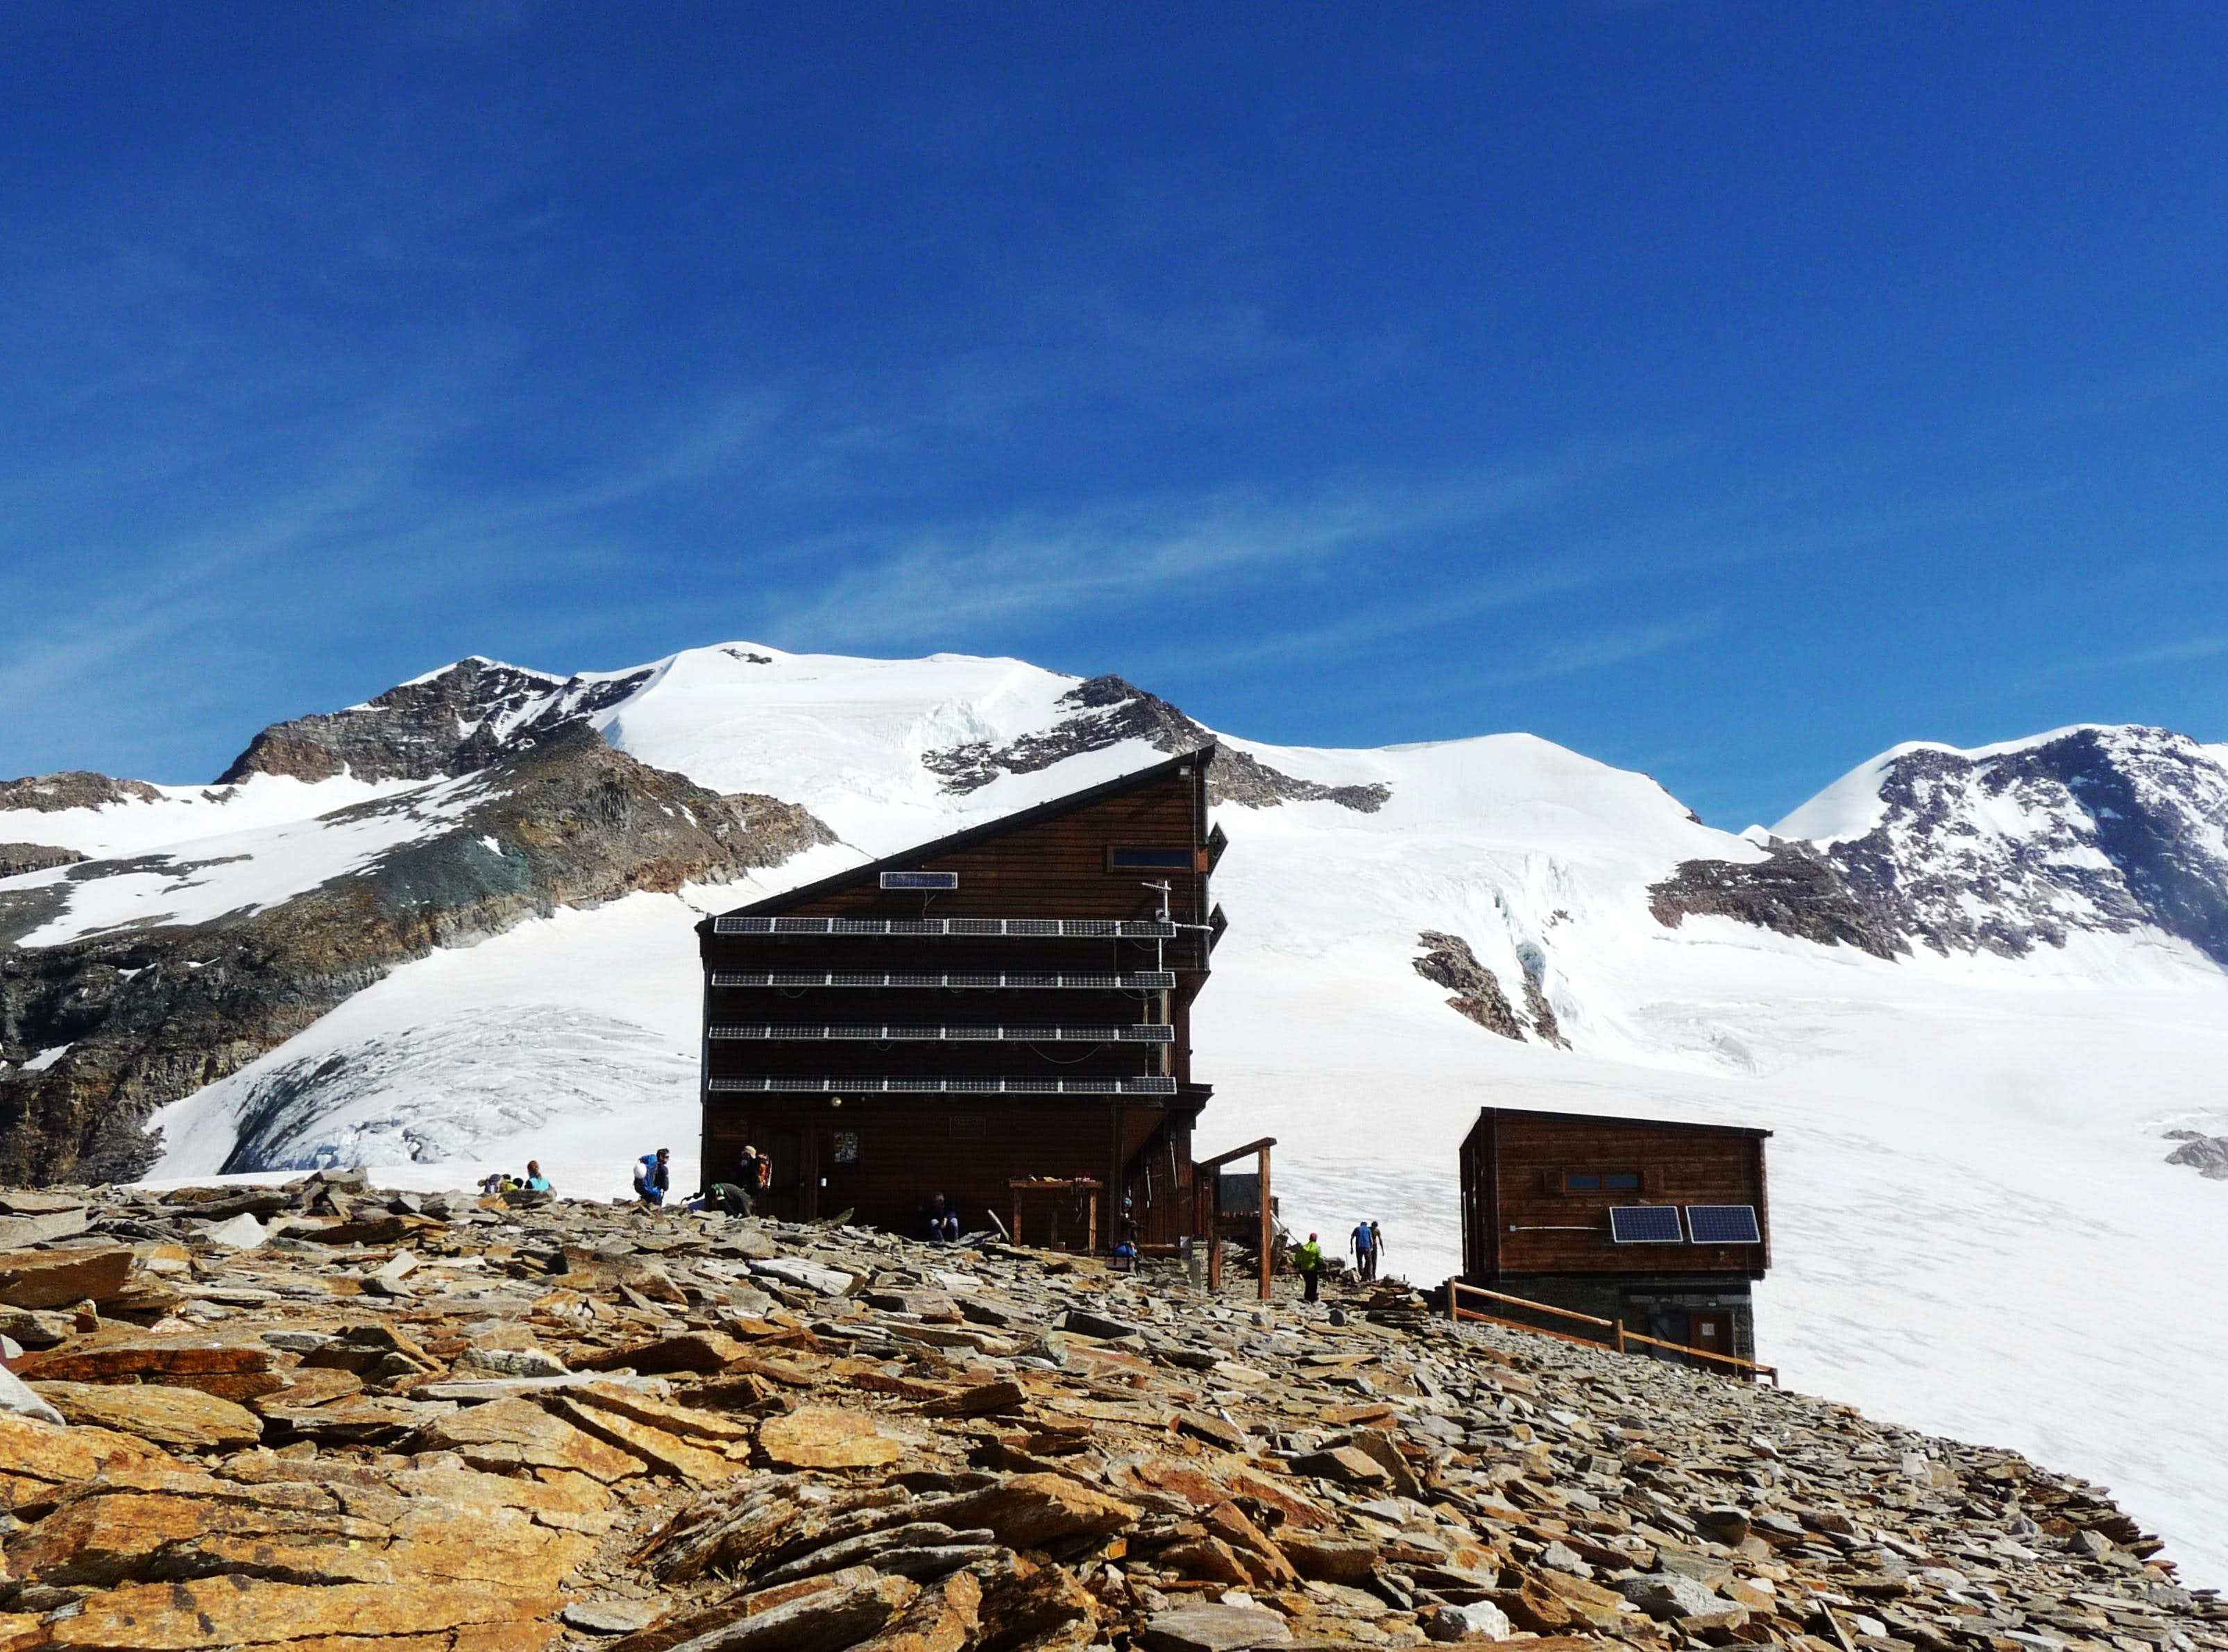 Quintino SELLA Hut